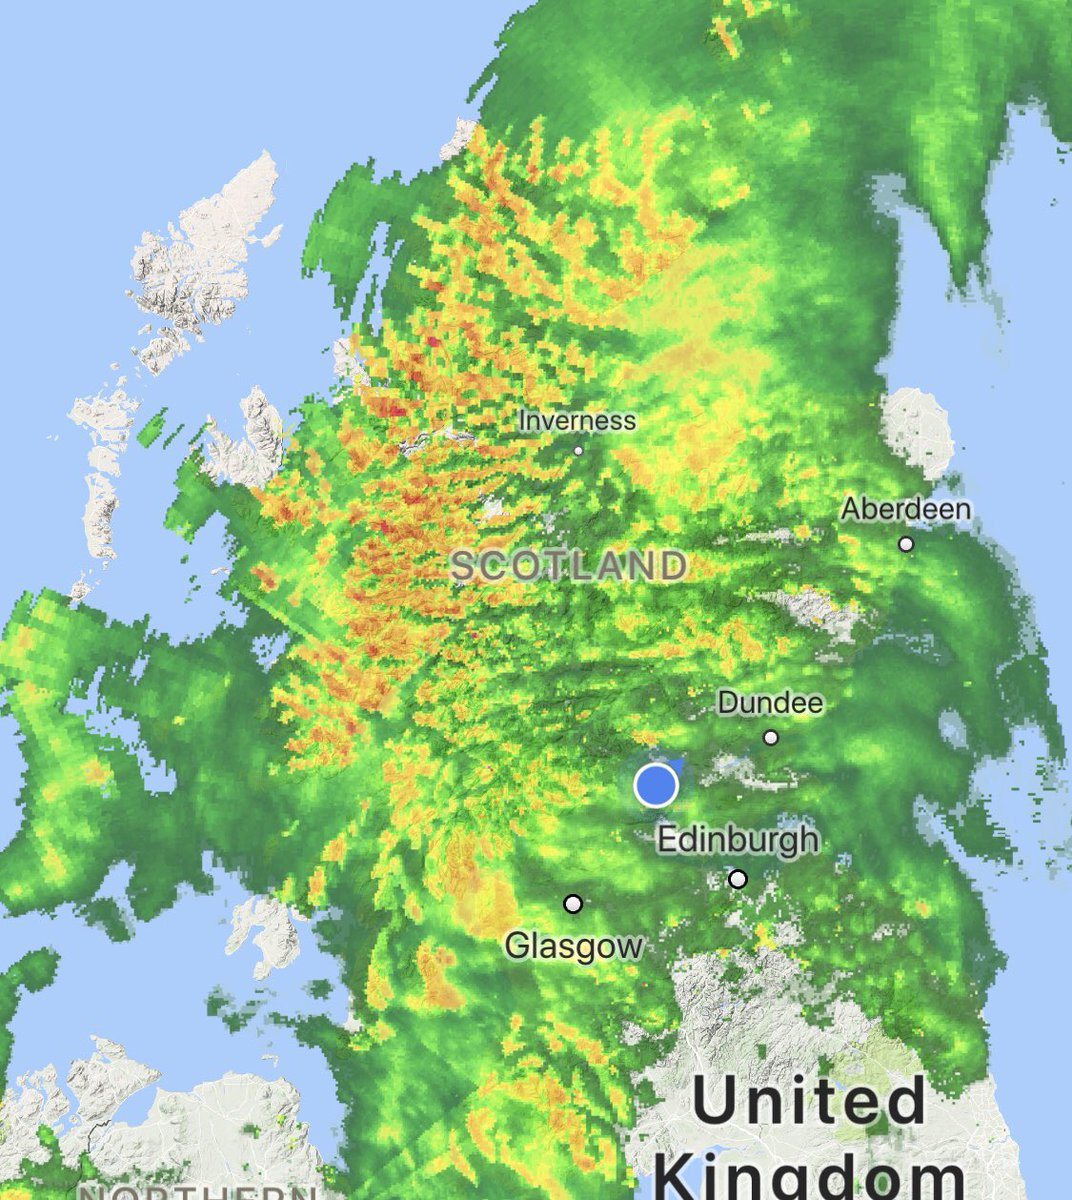 Today's rain is tomorrow's #Whisky #StormHector is coming soon, this is just yer starter